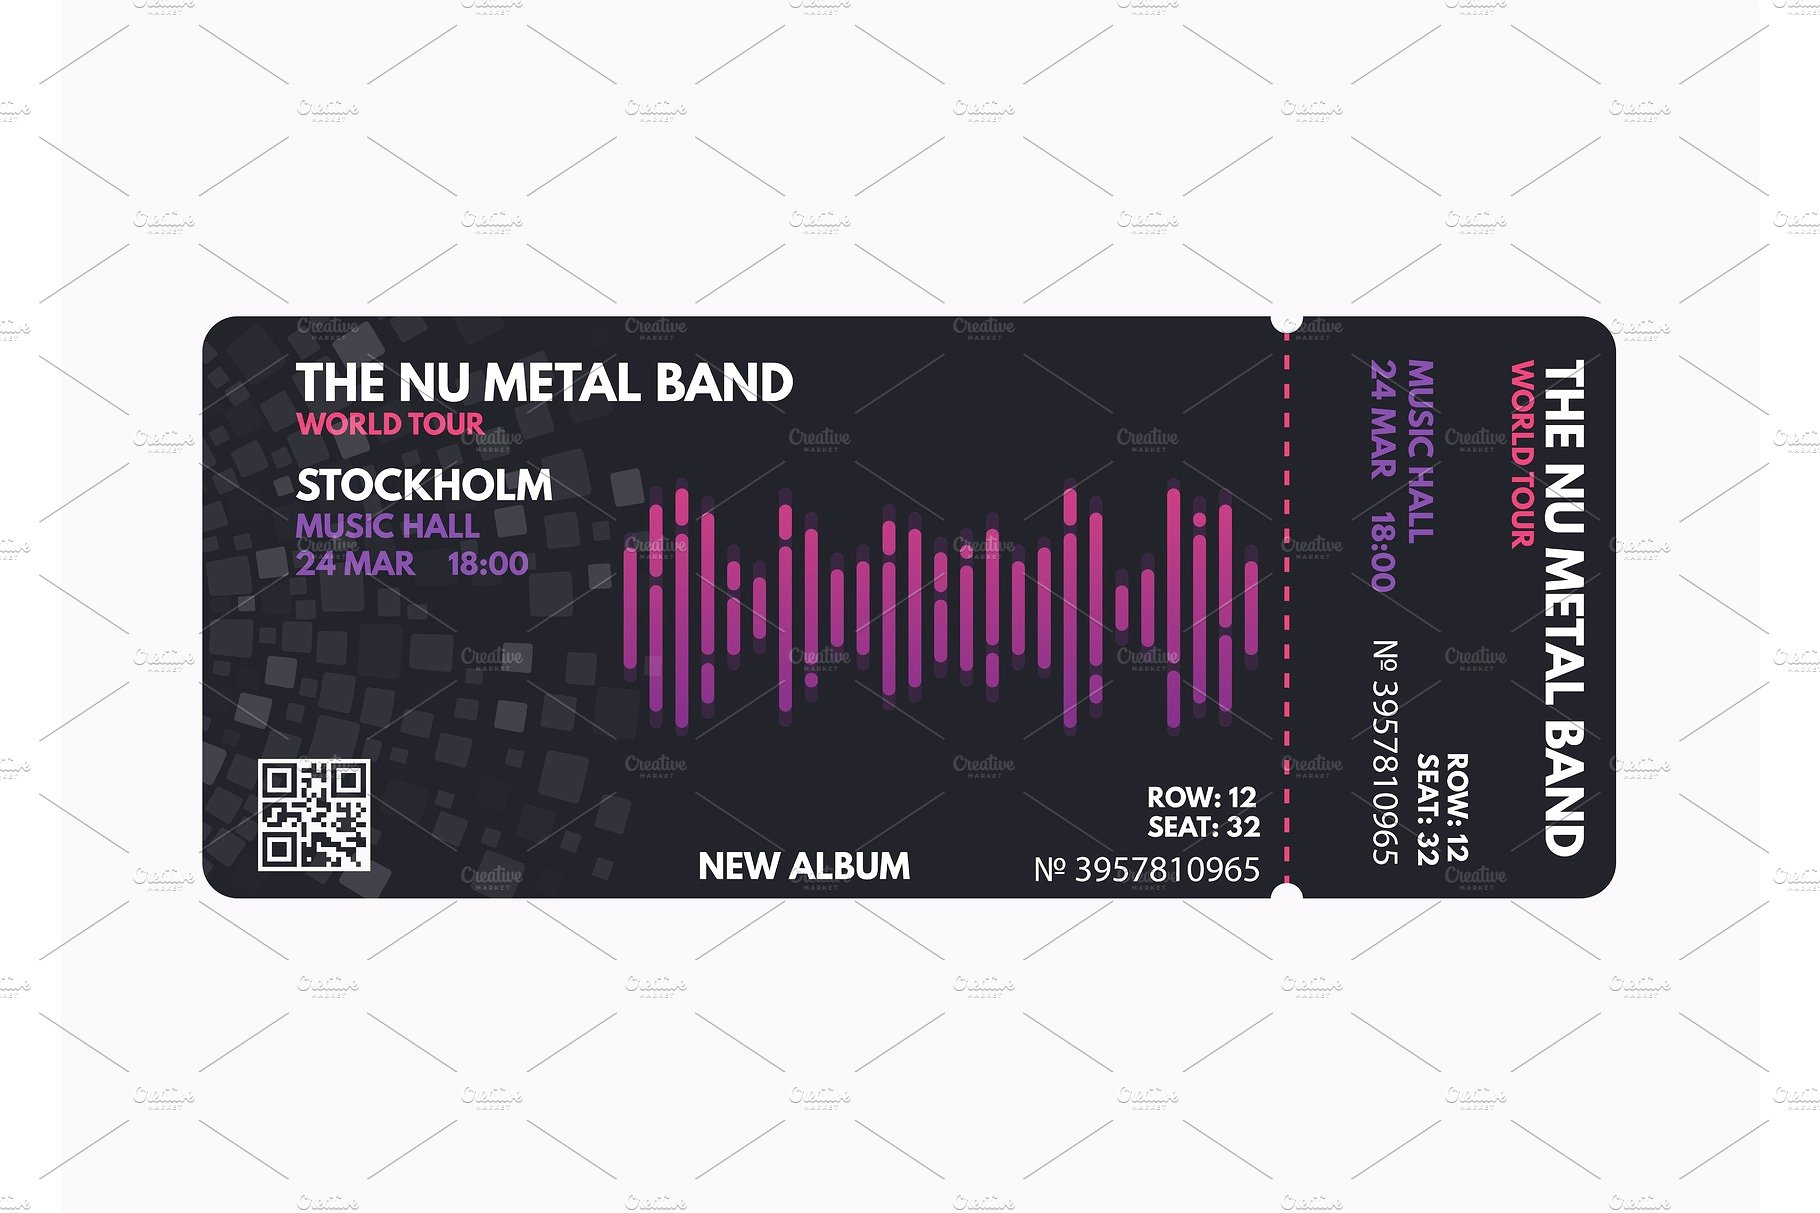 metal band event ticket example